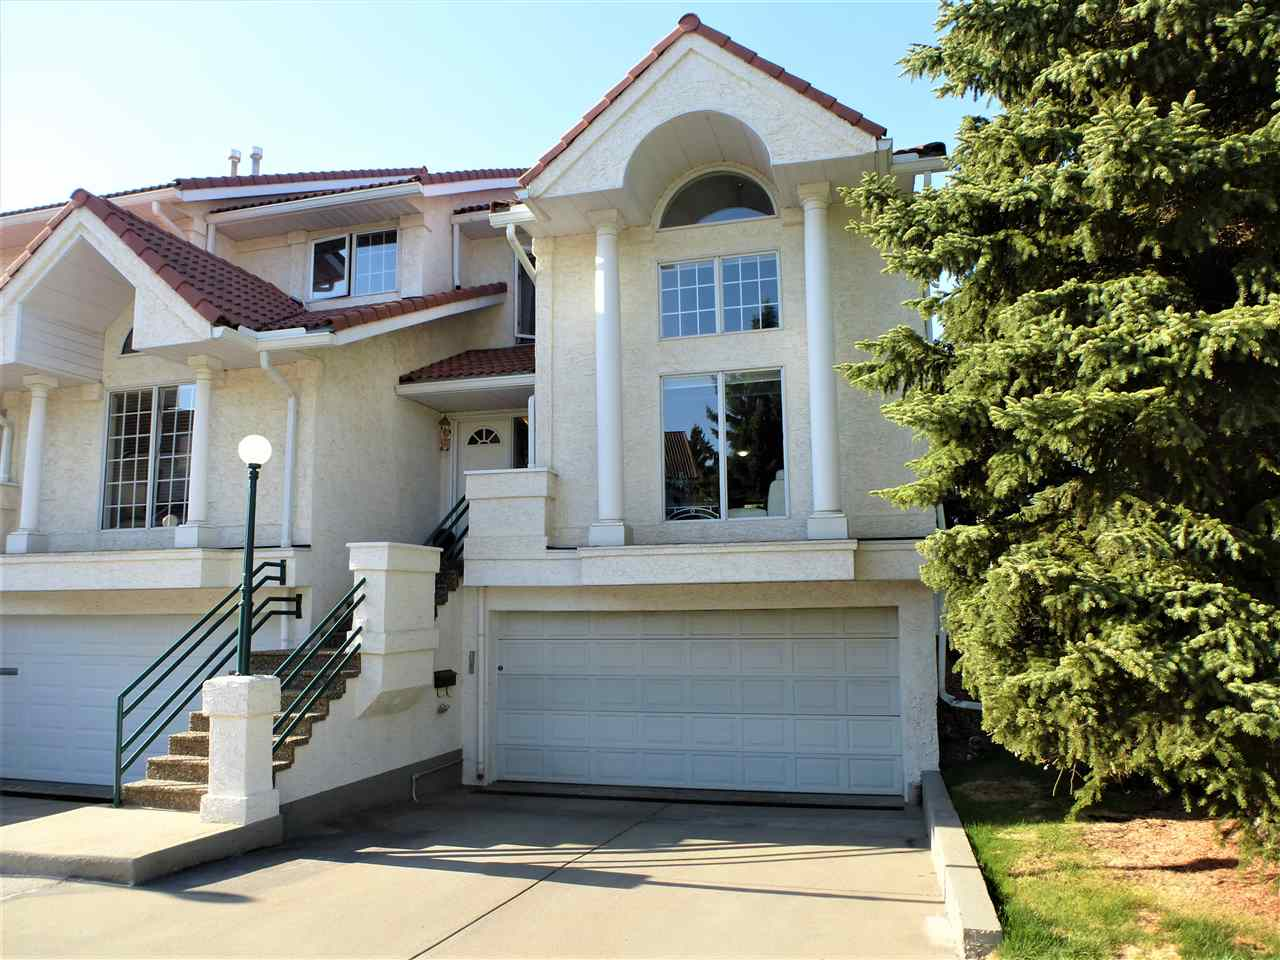 MLS® listing #E4157515 for sale located at 4652 151 Street NW